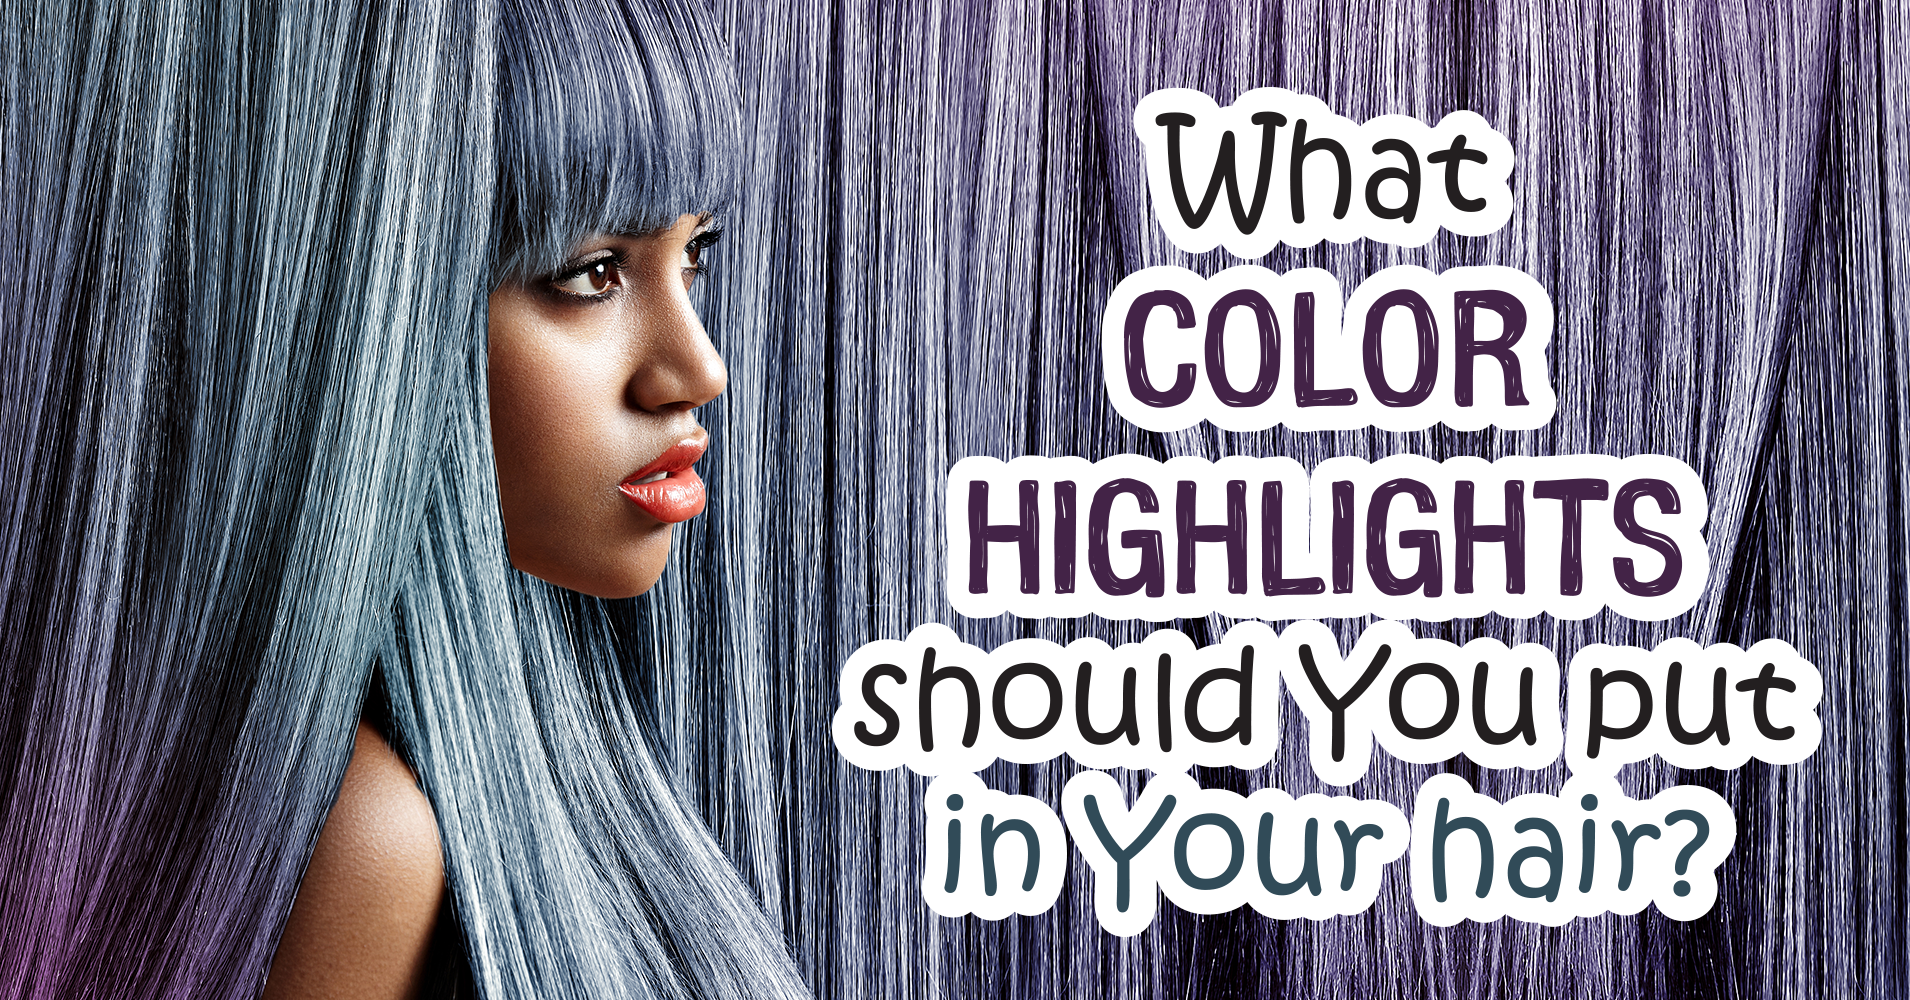 What Color Highlights Should You Put In Your Hair Quiz Quizony